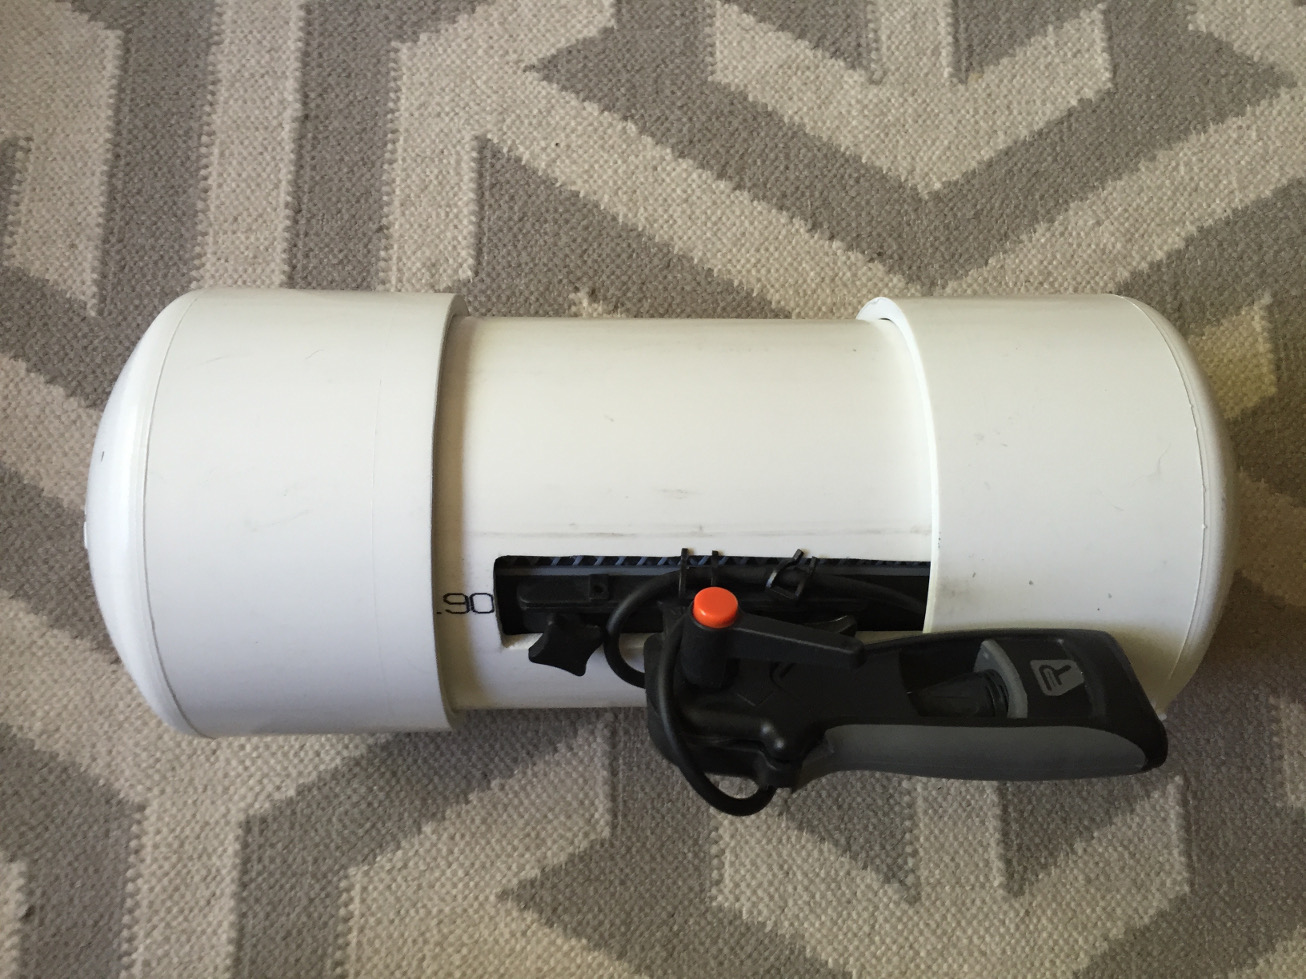 Windshield case for Rycote WS2 made from PVC pipe